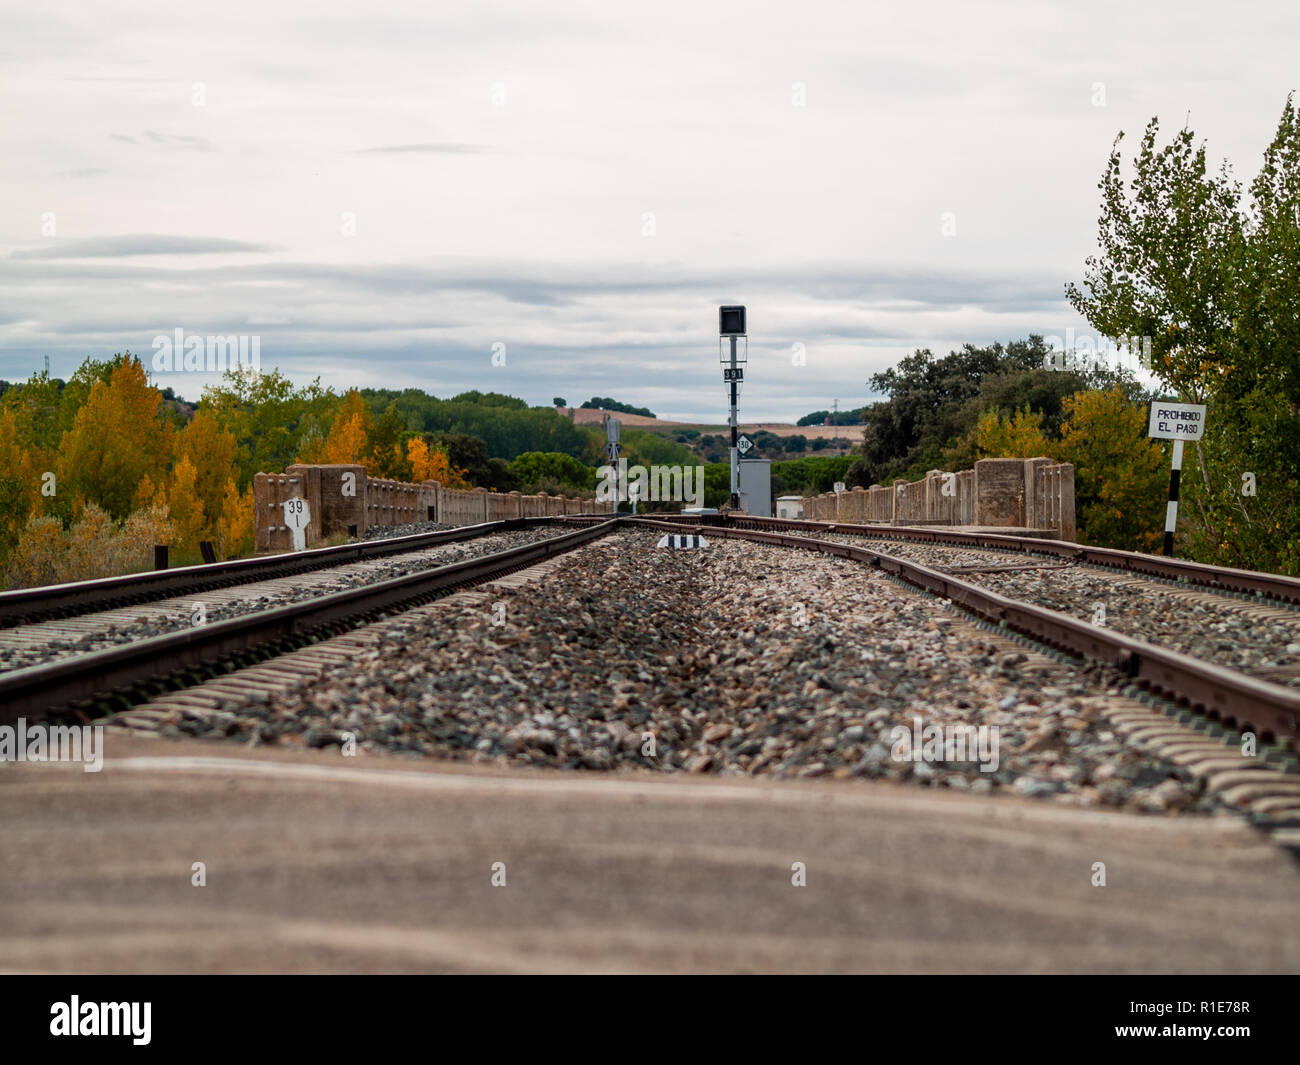 Crossroads on train tracks that go through a landscape in autumn with clouds in the sky Stock Photo